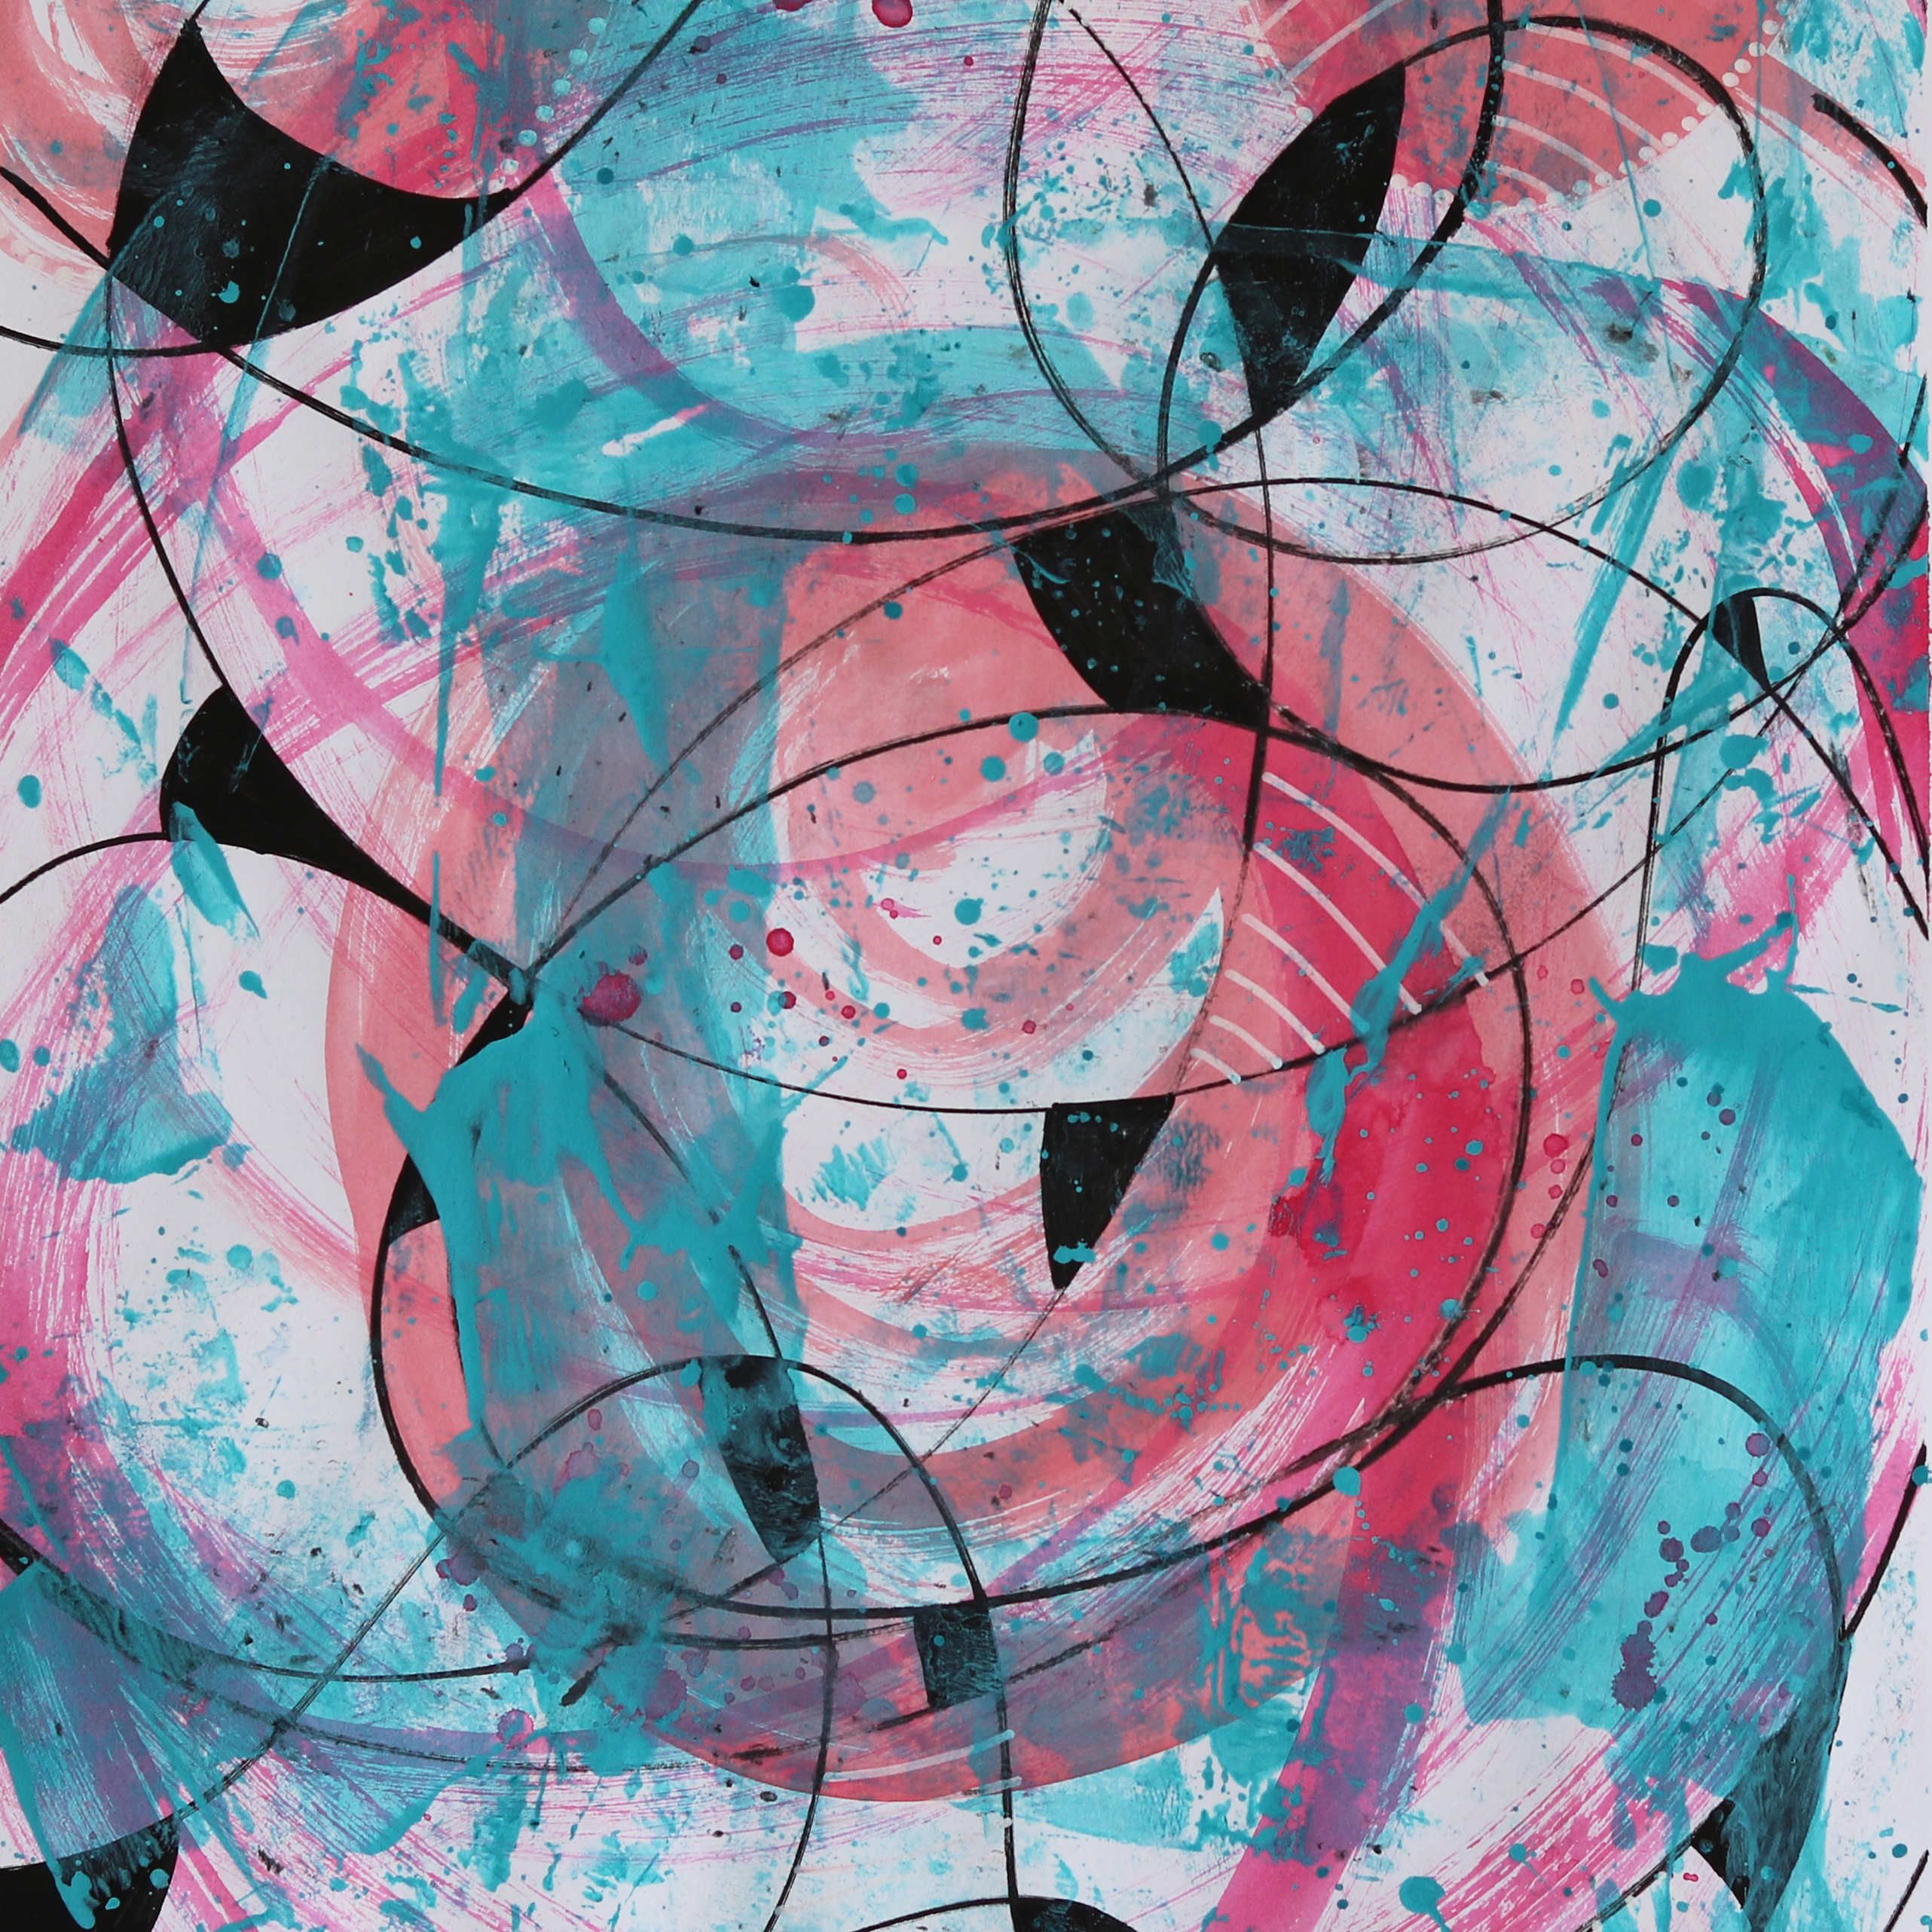 Abstract Acrylic Art On Paper - Render Me Special 3 by Charlie Albright | Moments by Charlie | Creative Abstract Artist, Photographer and Blogger | Made in Adelaide, Australia